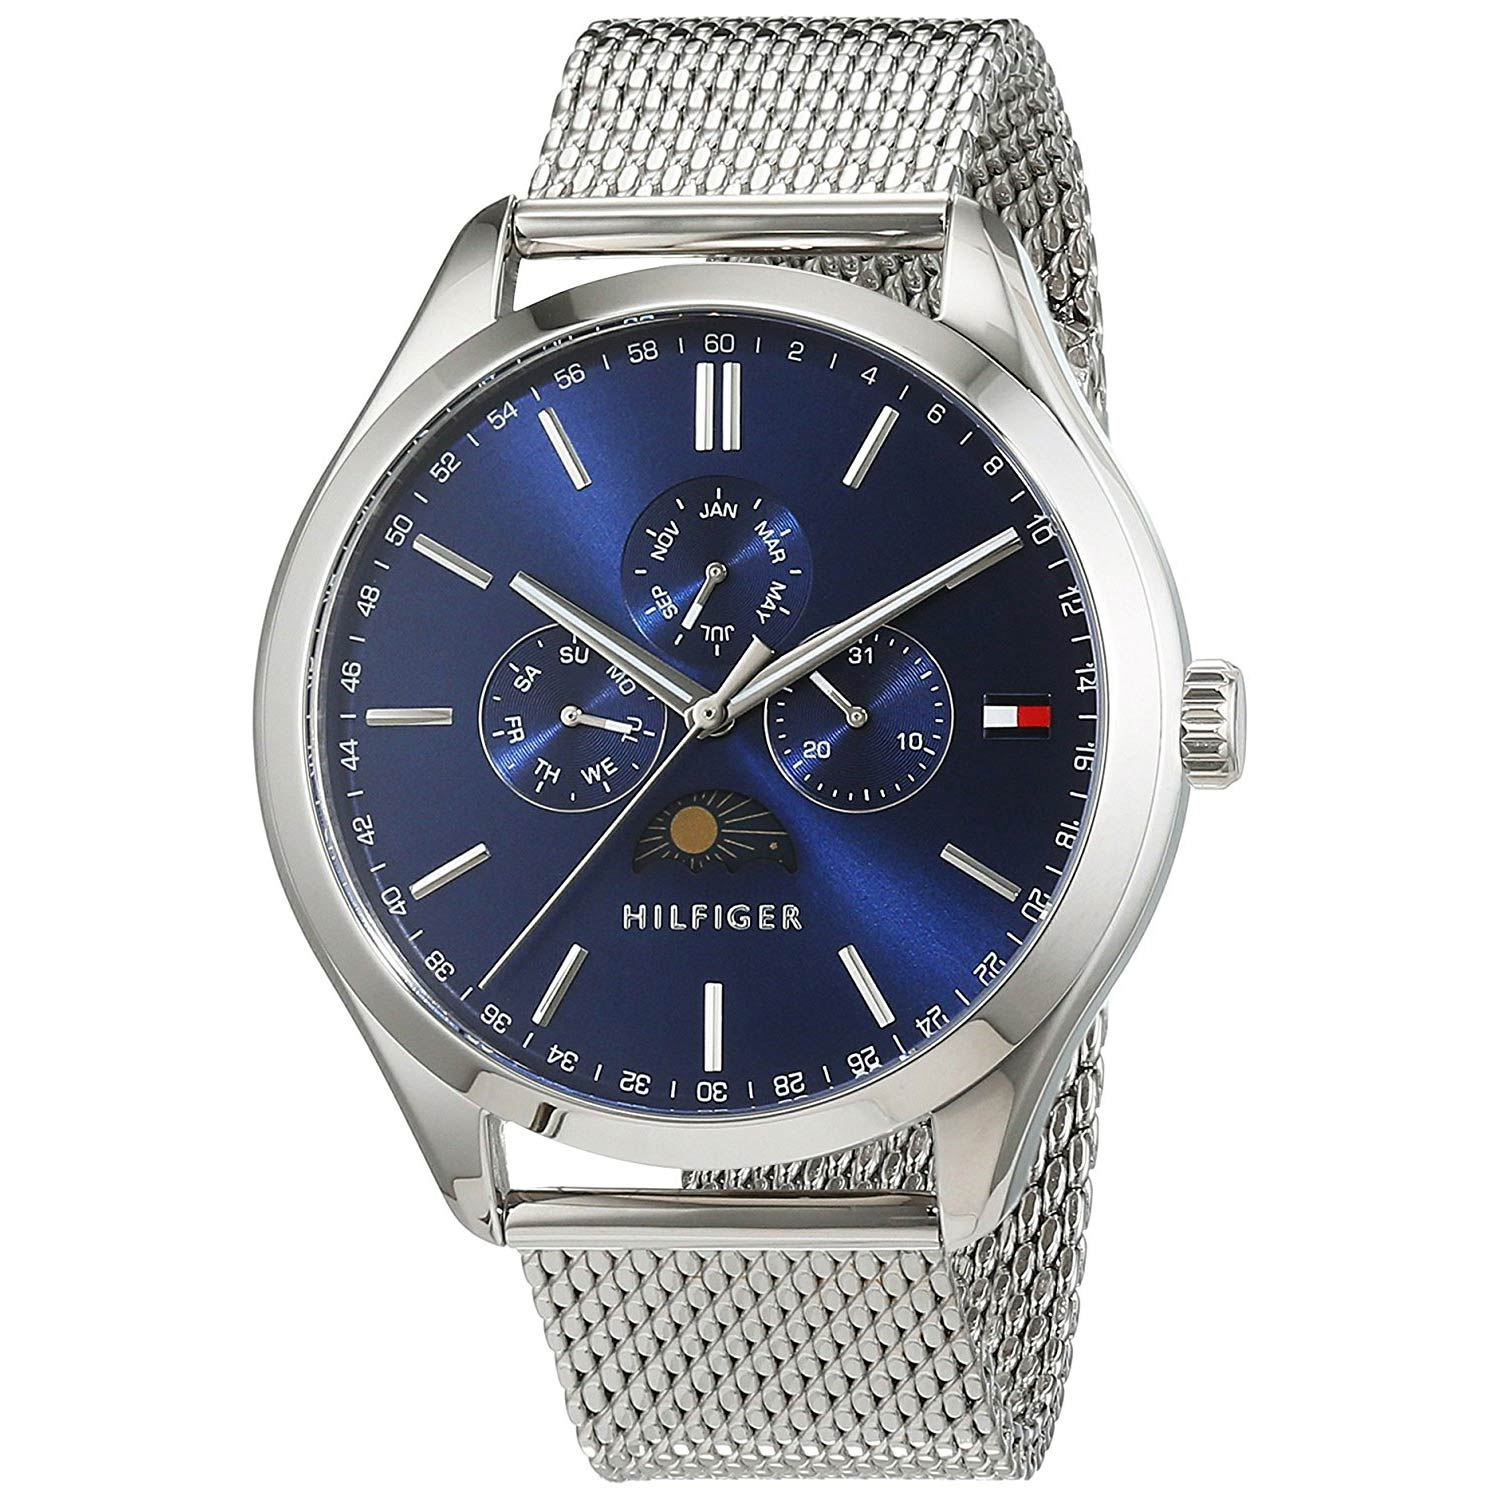 Tommy-Hilfiger-Sport-Luxury-1791302-Herrenuhr-mit-Mondphasen-Funktion